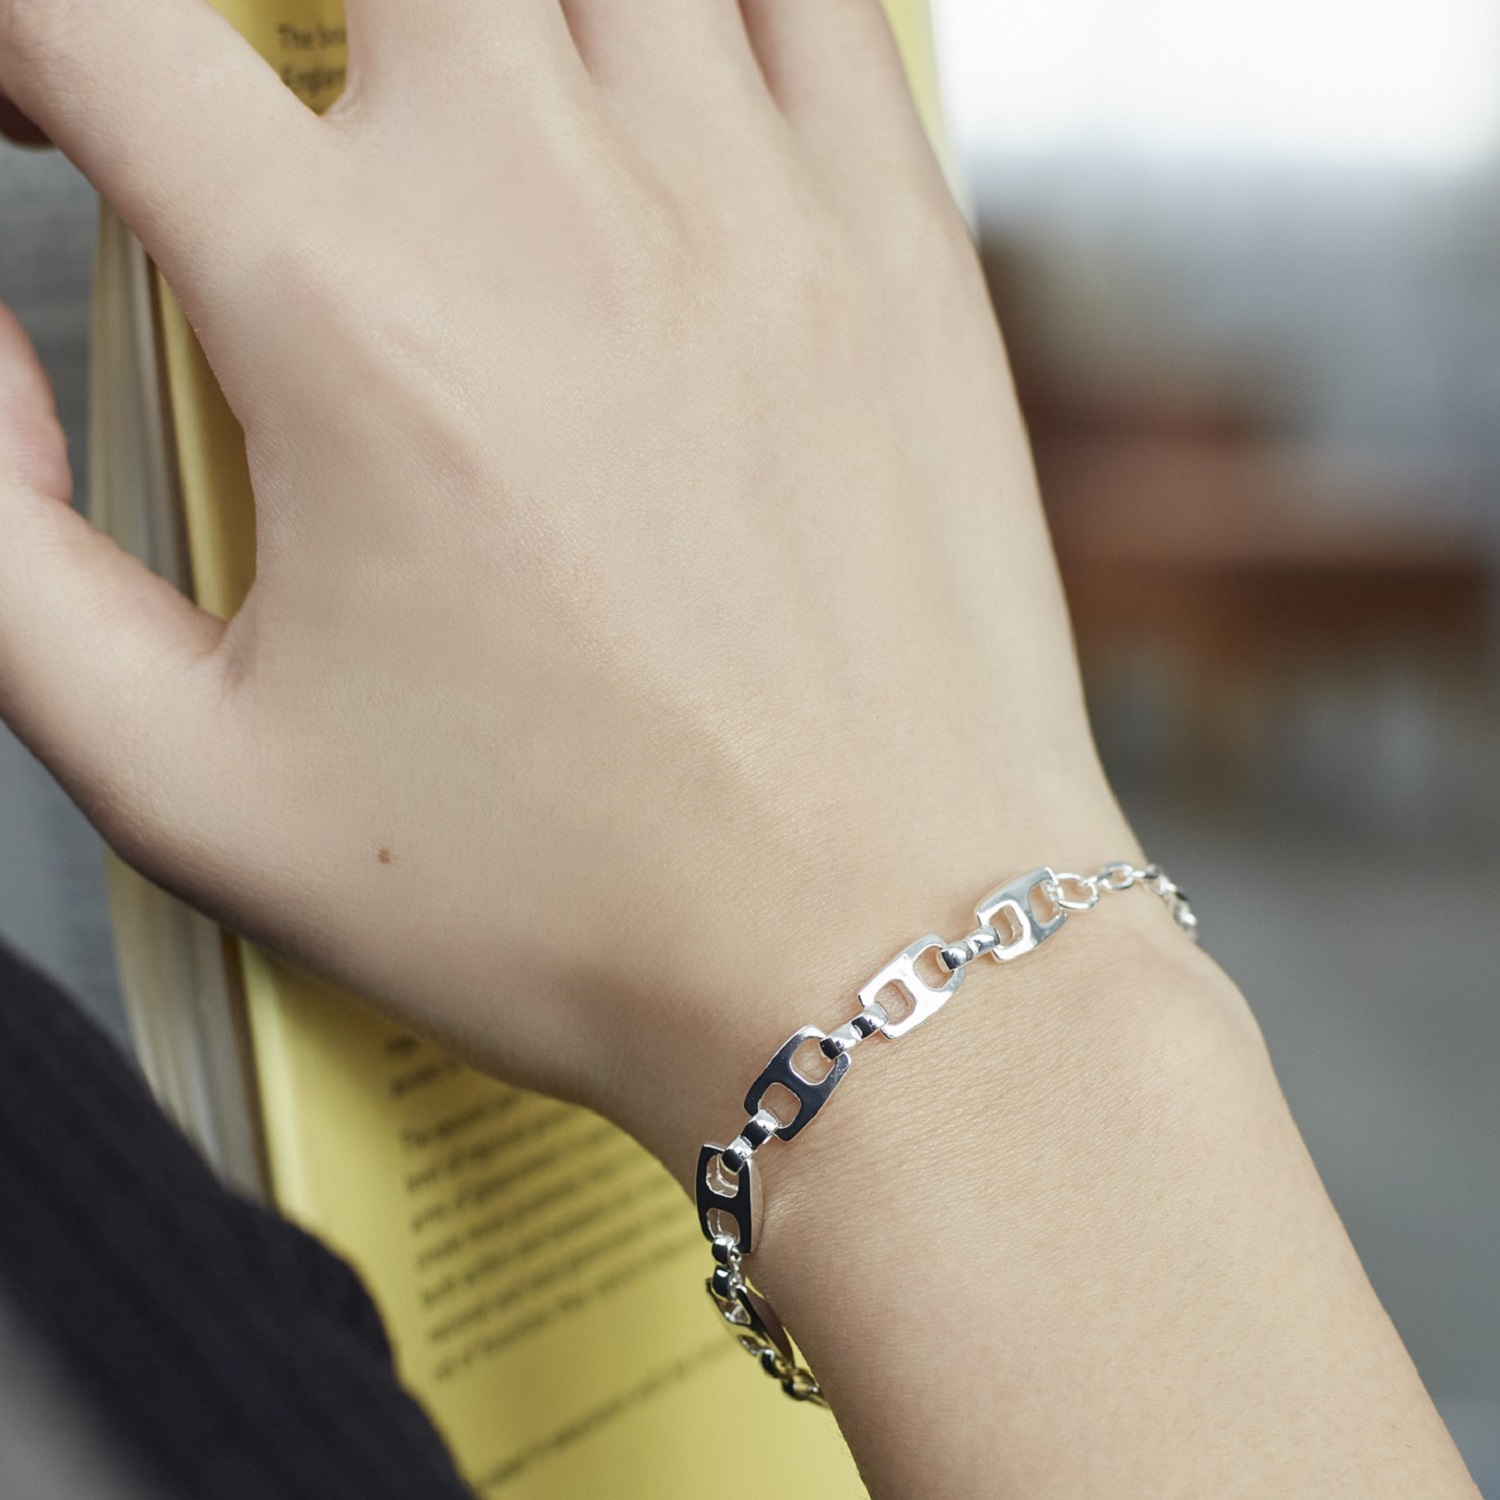 【Nothing And Others/ナッシングアンドアザーズ】Square Chain bracelet